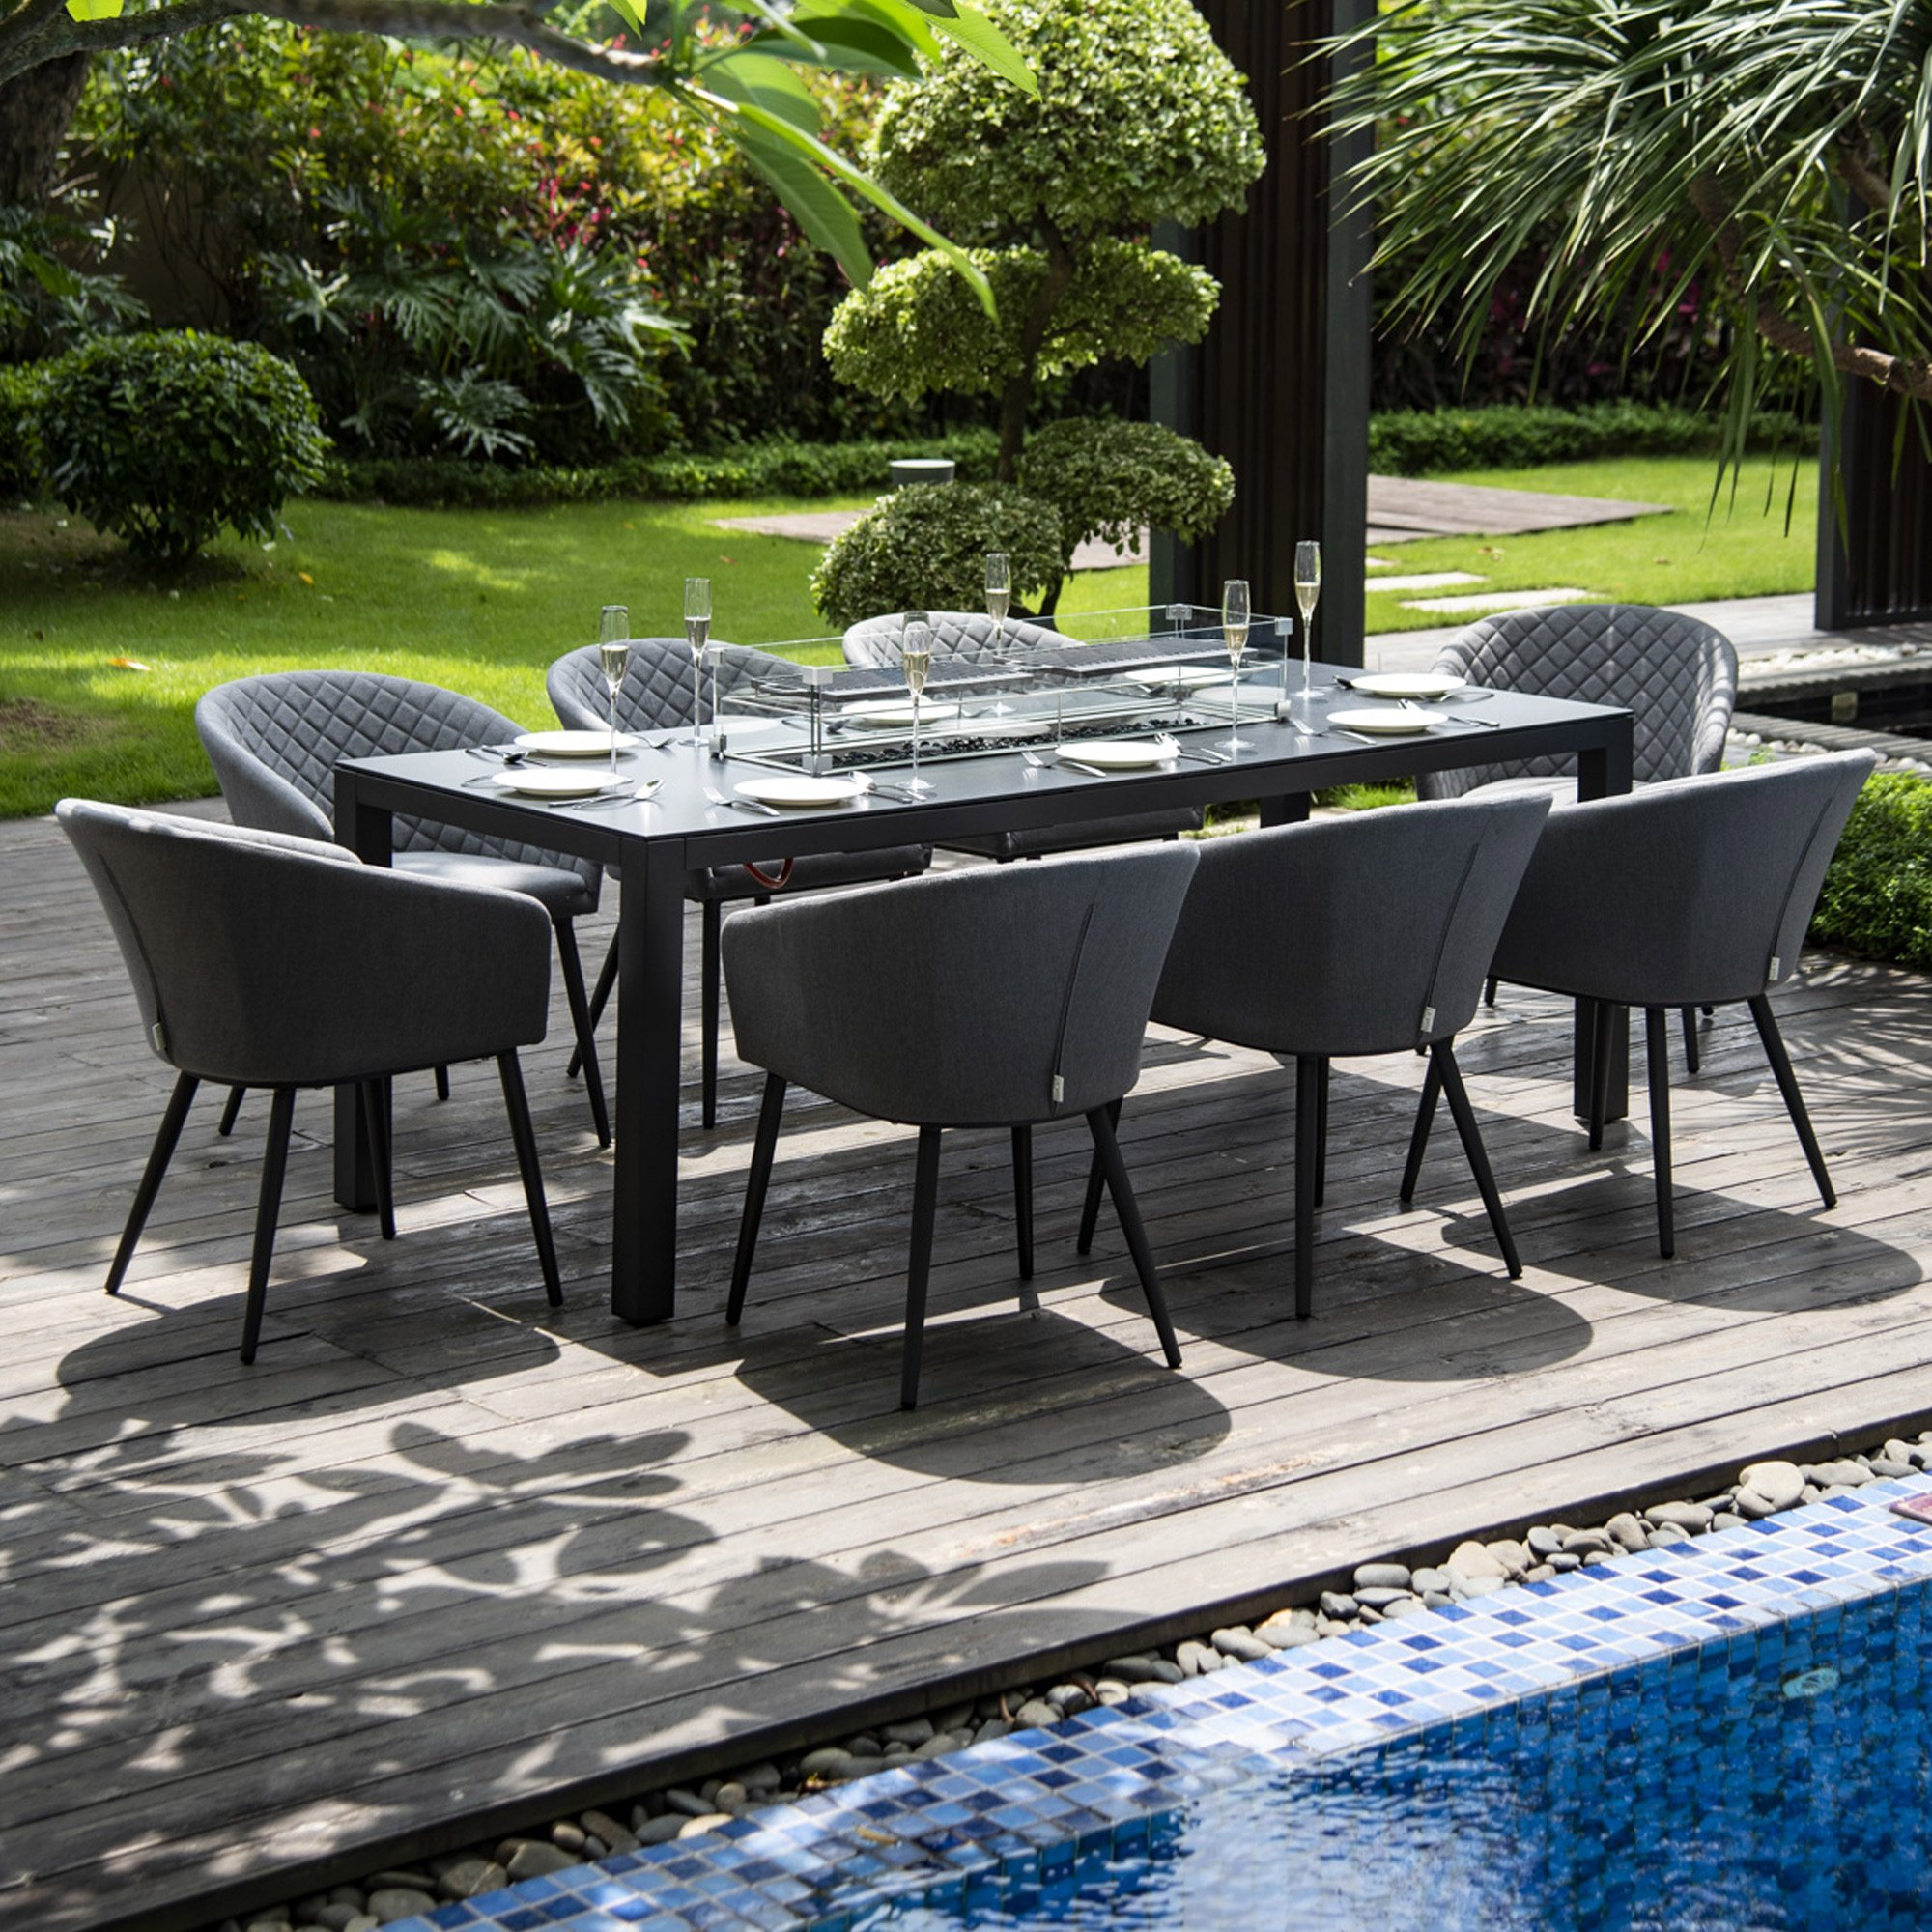 Maze Rattan Ibiza 8 Seater Fabric Garden Dining Set With Fire Pit